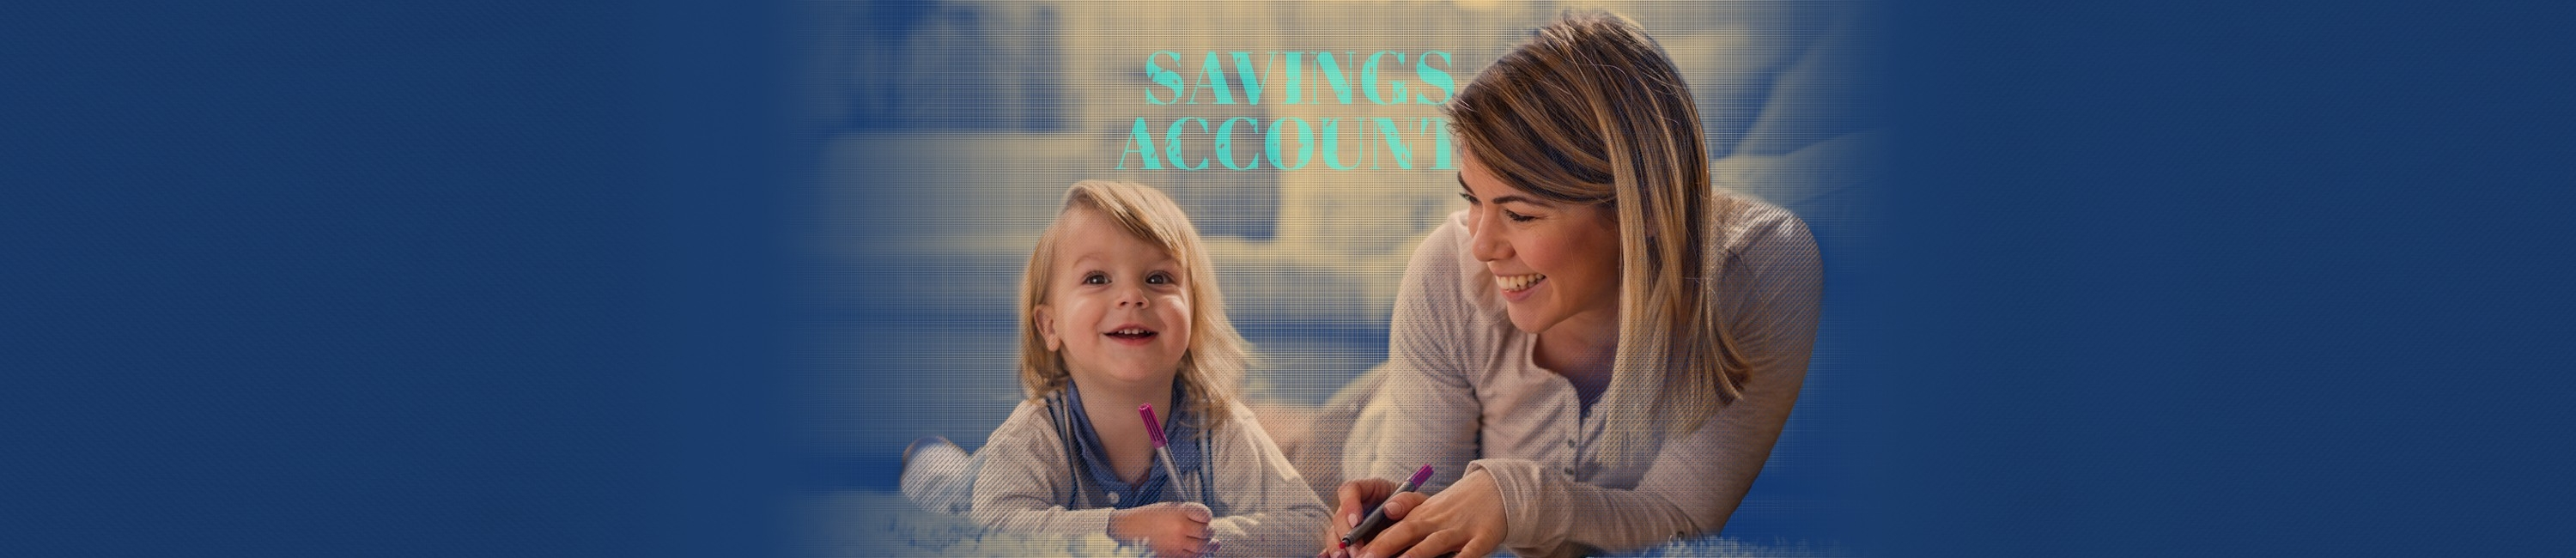 young girl smiling on the floor next to her mom who has ensured her daughter's future with a Fidelity Bank & Trust Savings account. Words on image say savings accounts